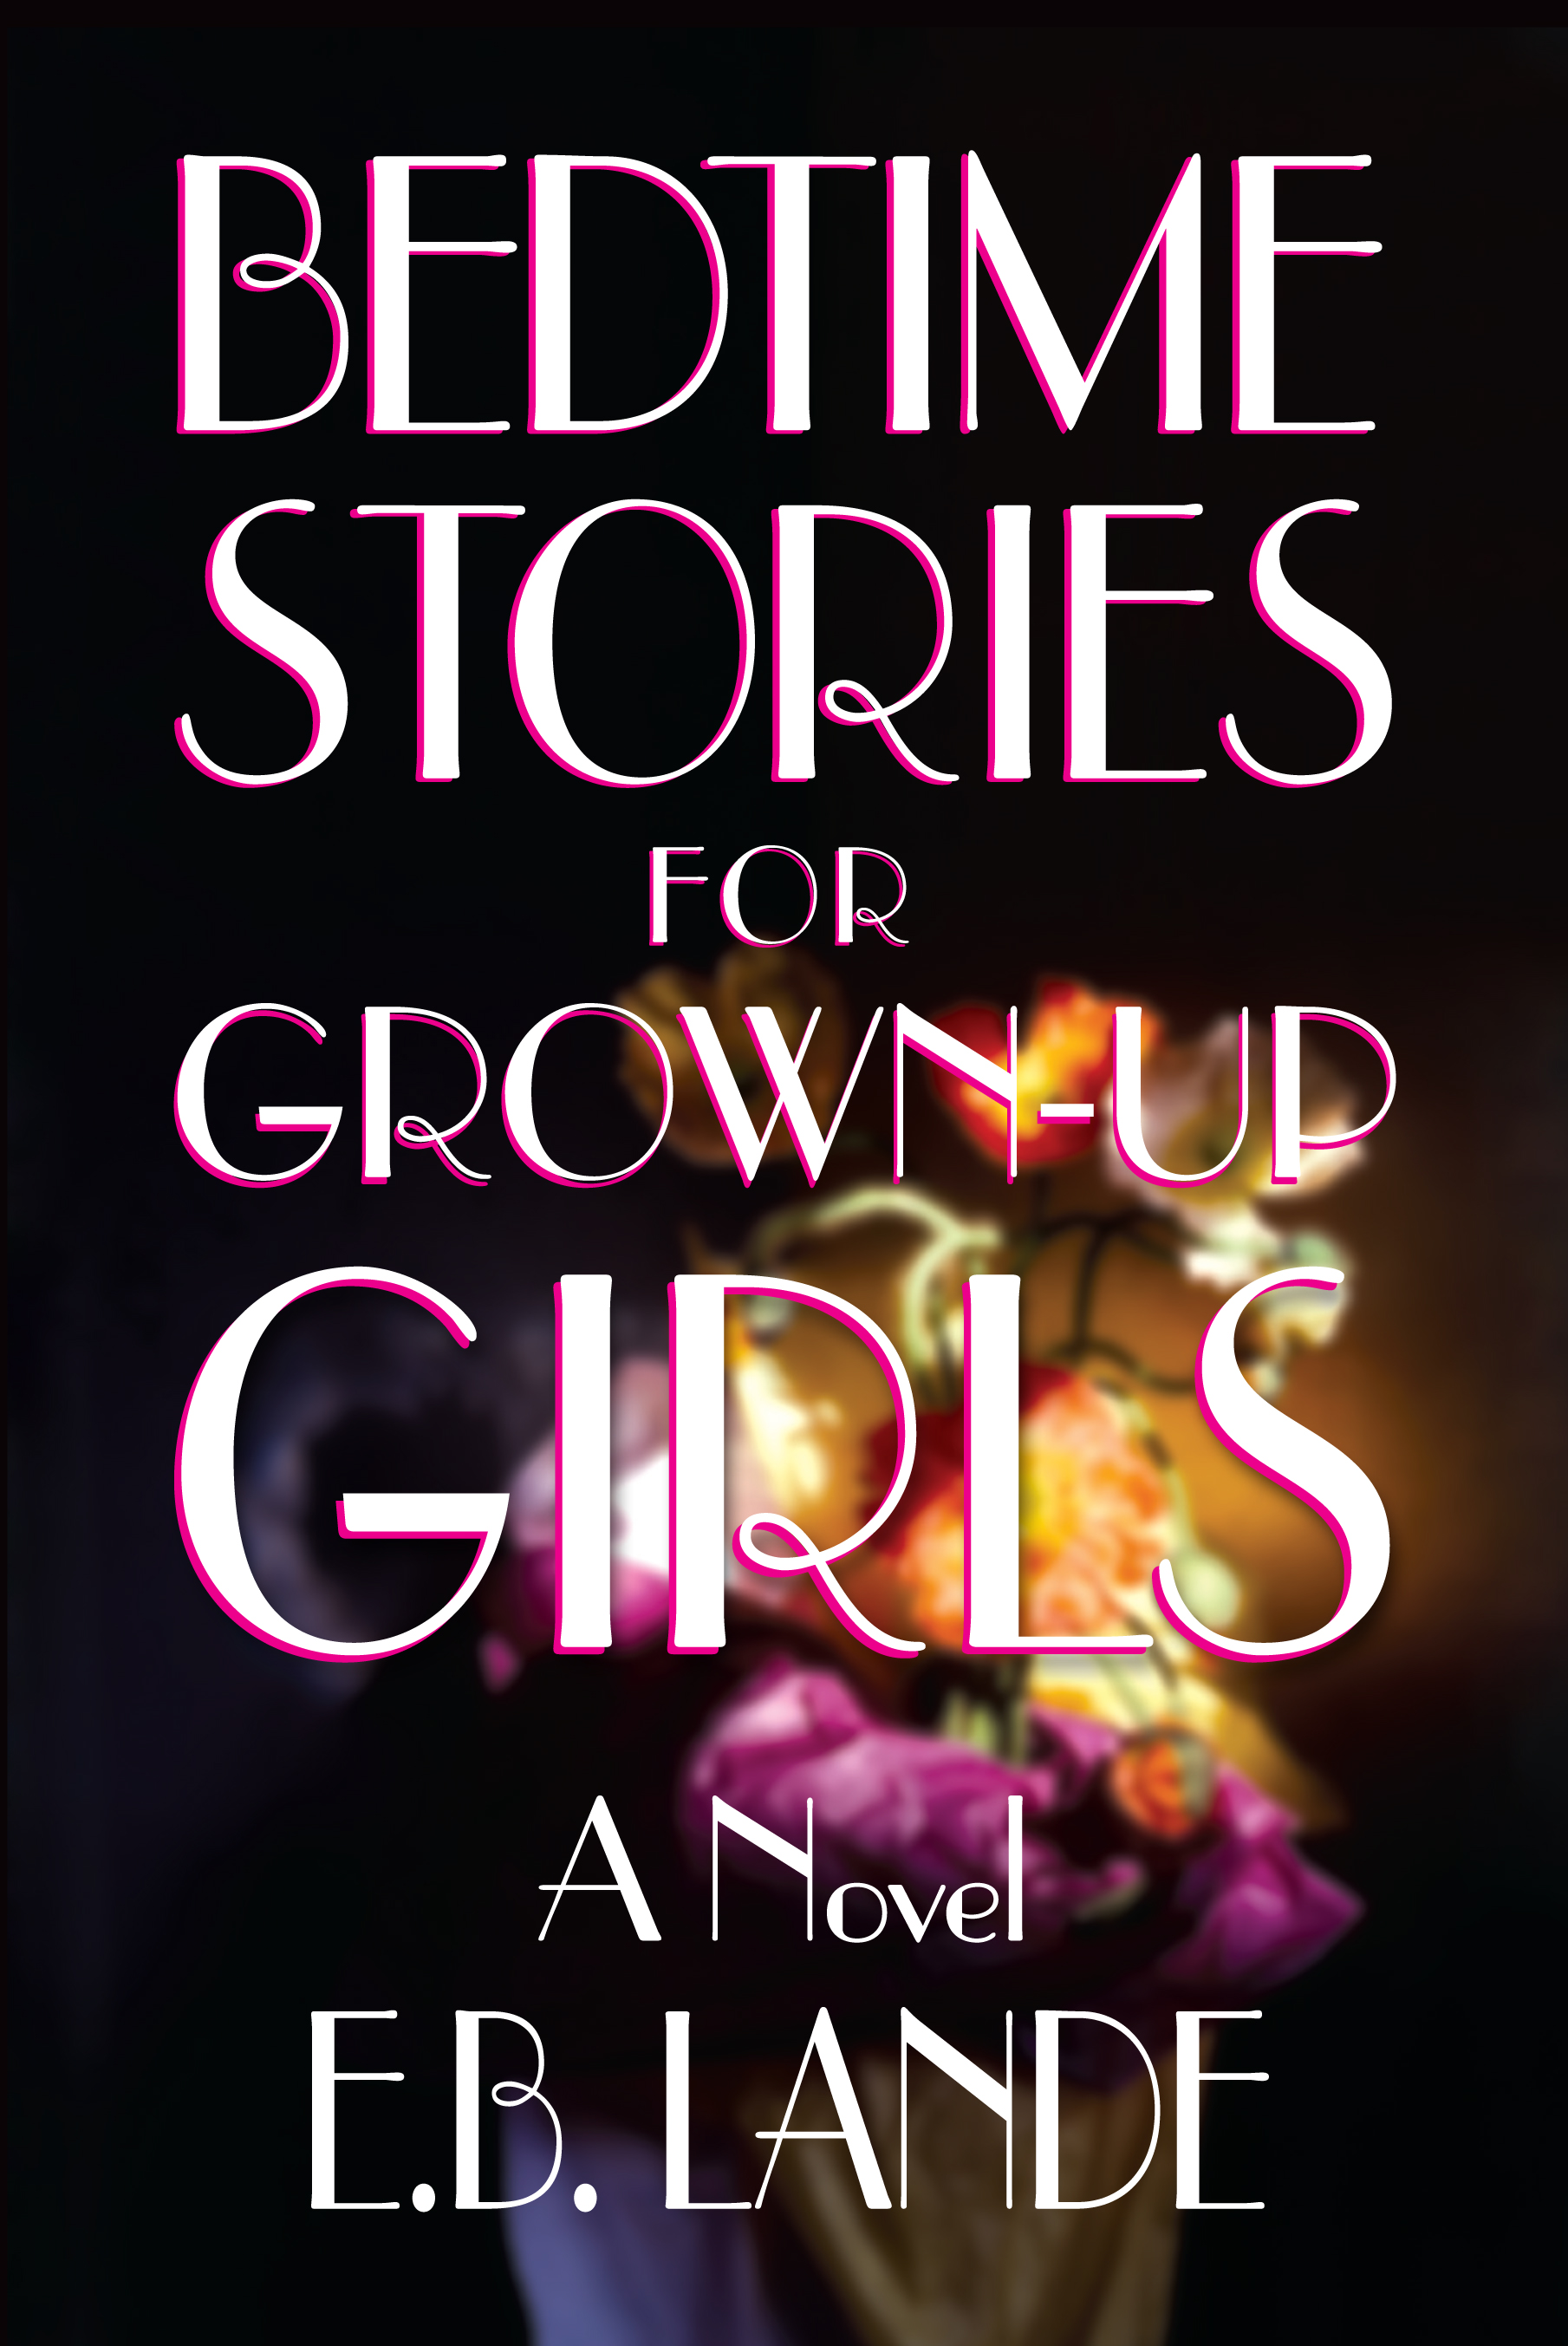 Bedtime Stories For Grown-up Girls